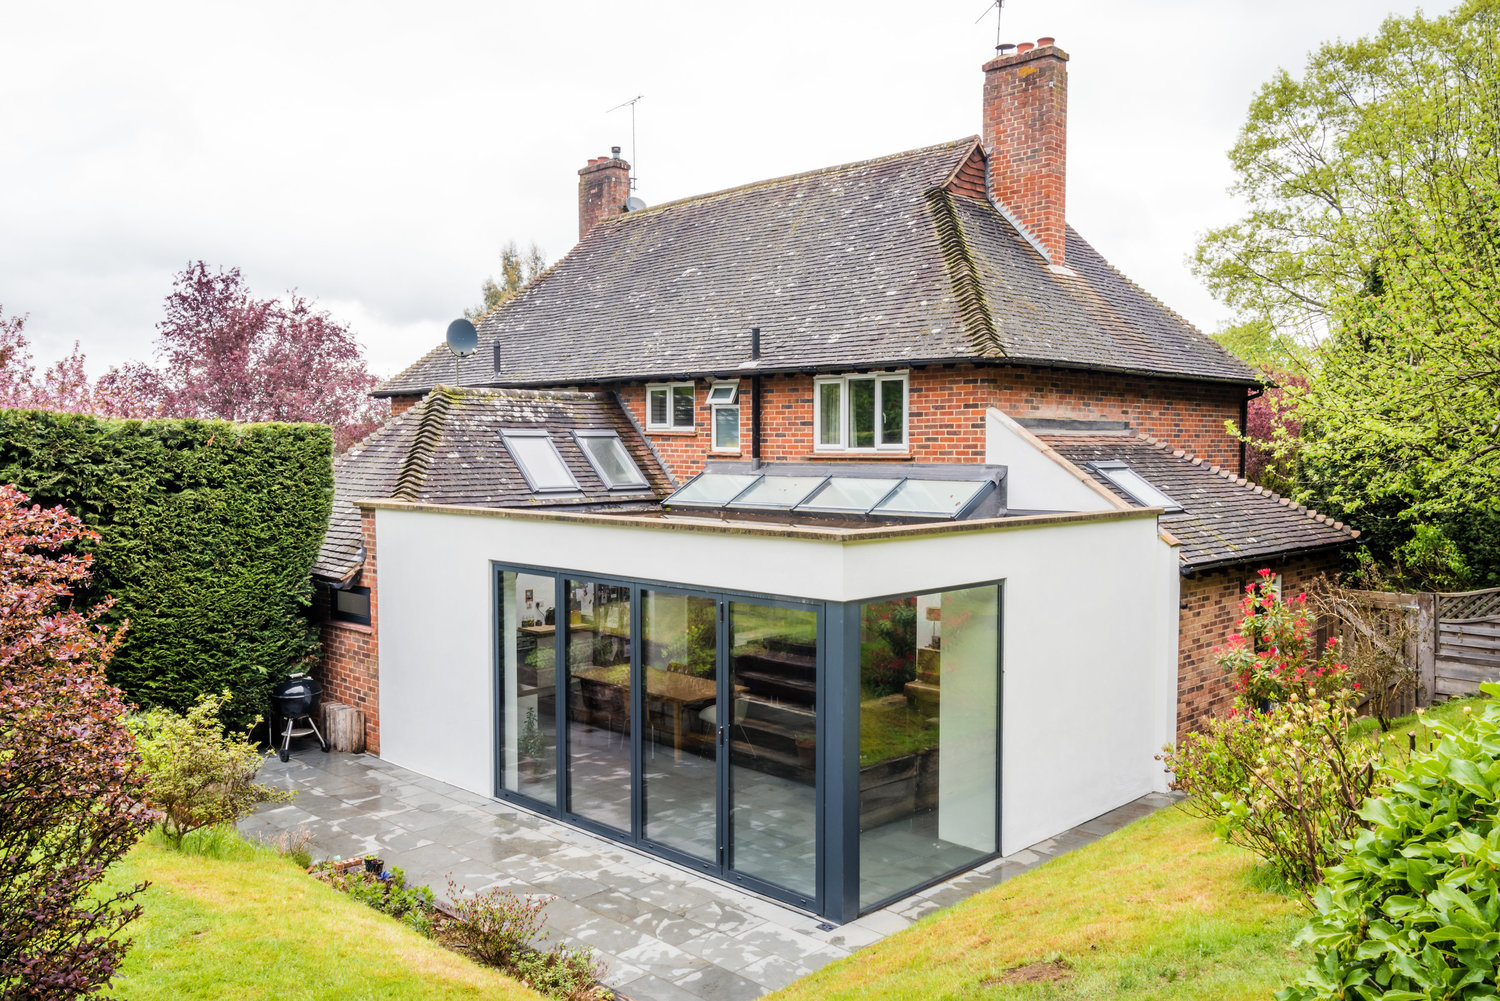 Home Renovation by David Strudwick